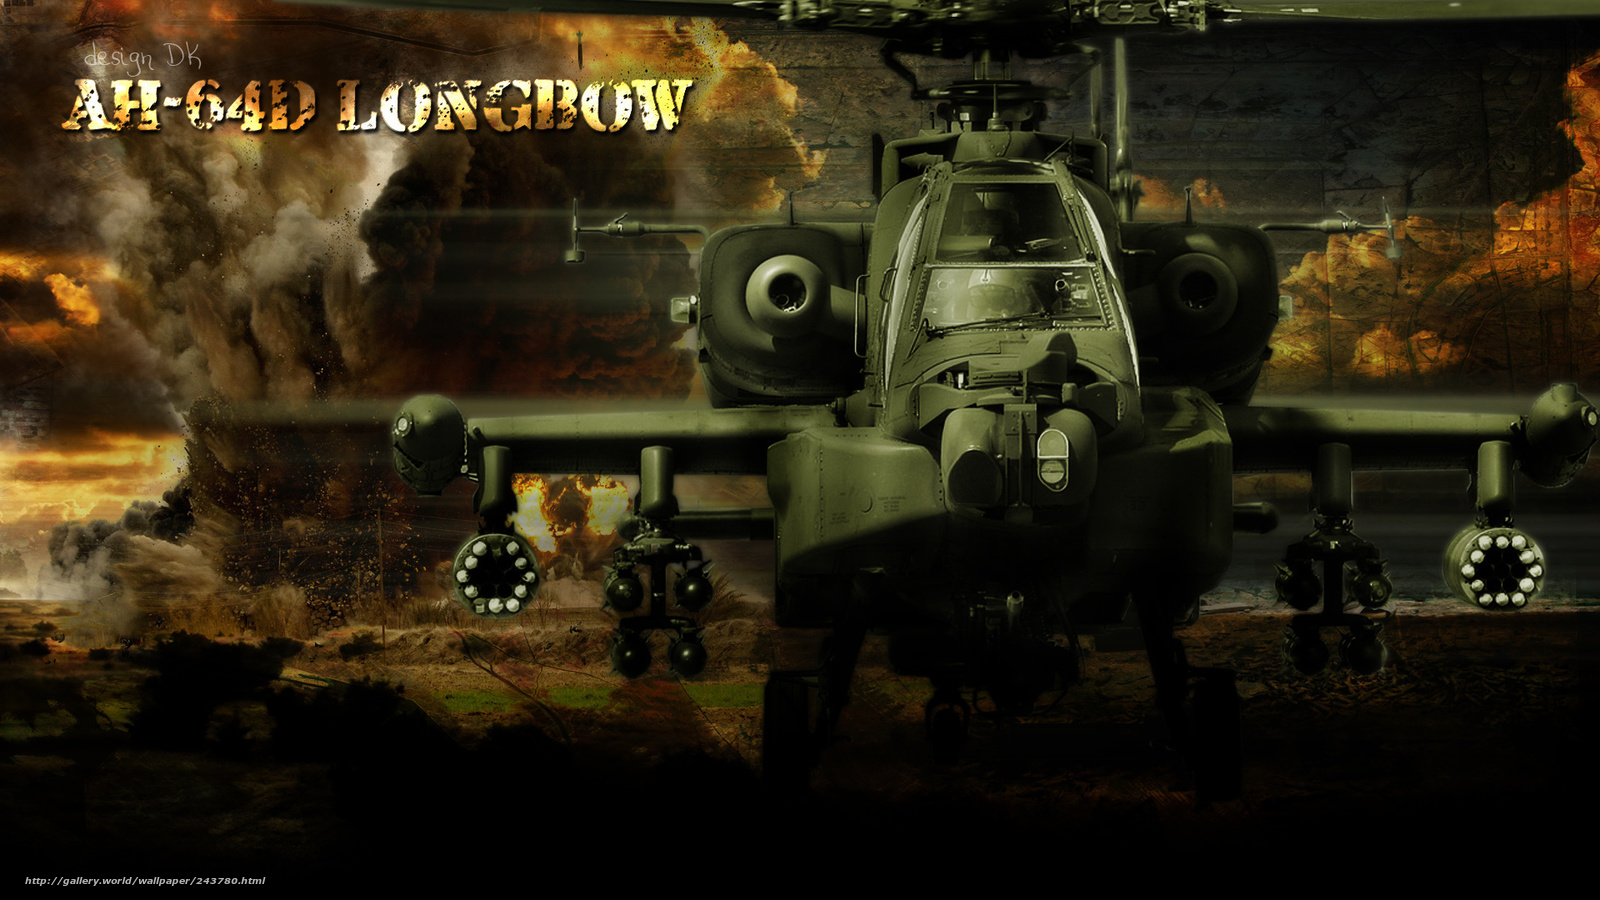 Download wallpaper Helicopter AH 64 Apache desktop wallpaper in 1600x900